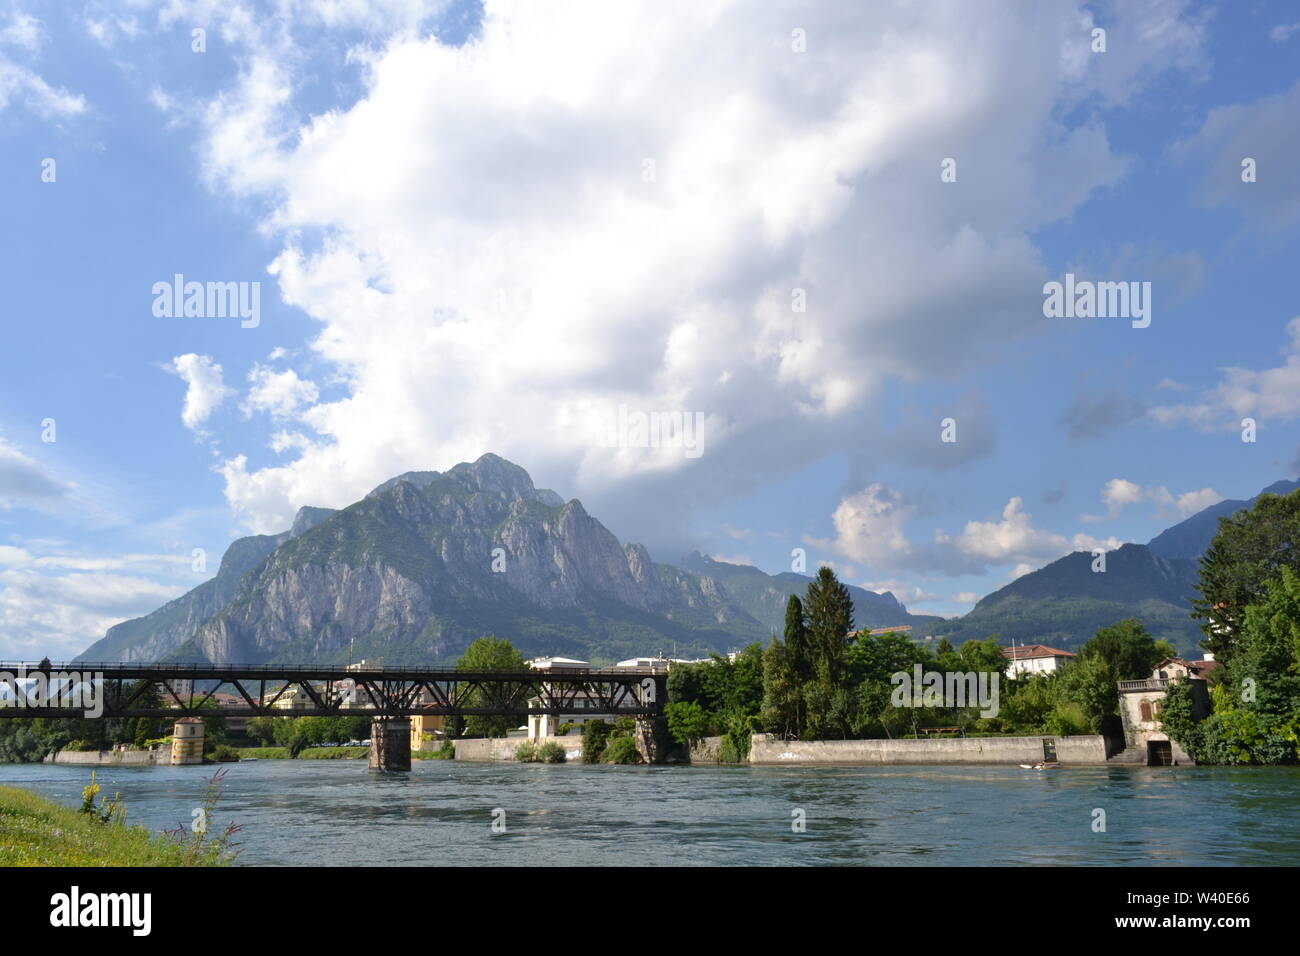 Panoramic view to Lecco railway bridge and the Adda river flowing in a sunny summer day with a spectacular cloudscape over city and mountains. Stock Photo